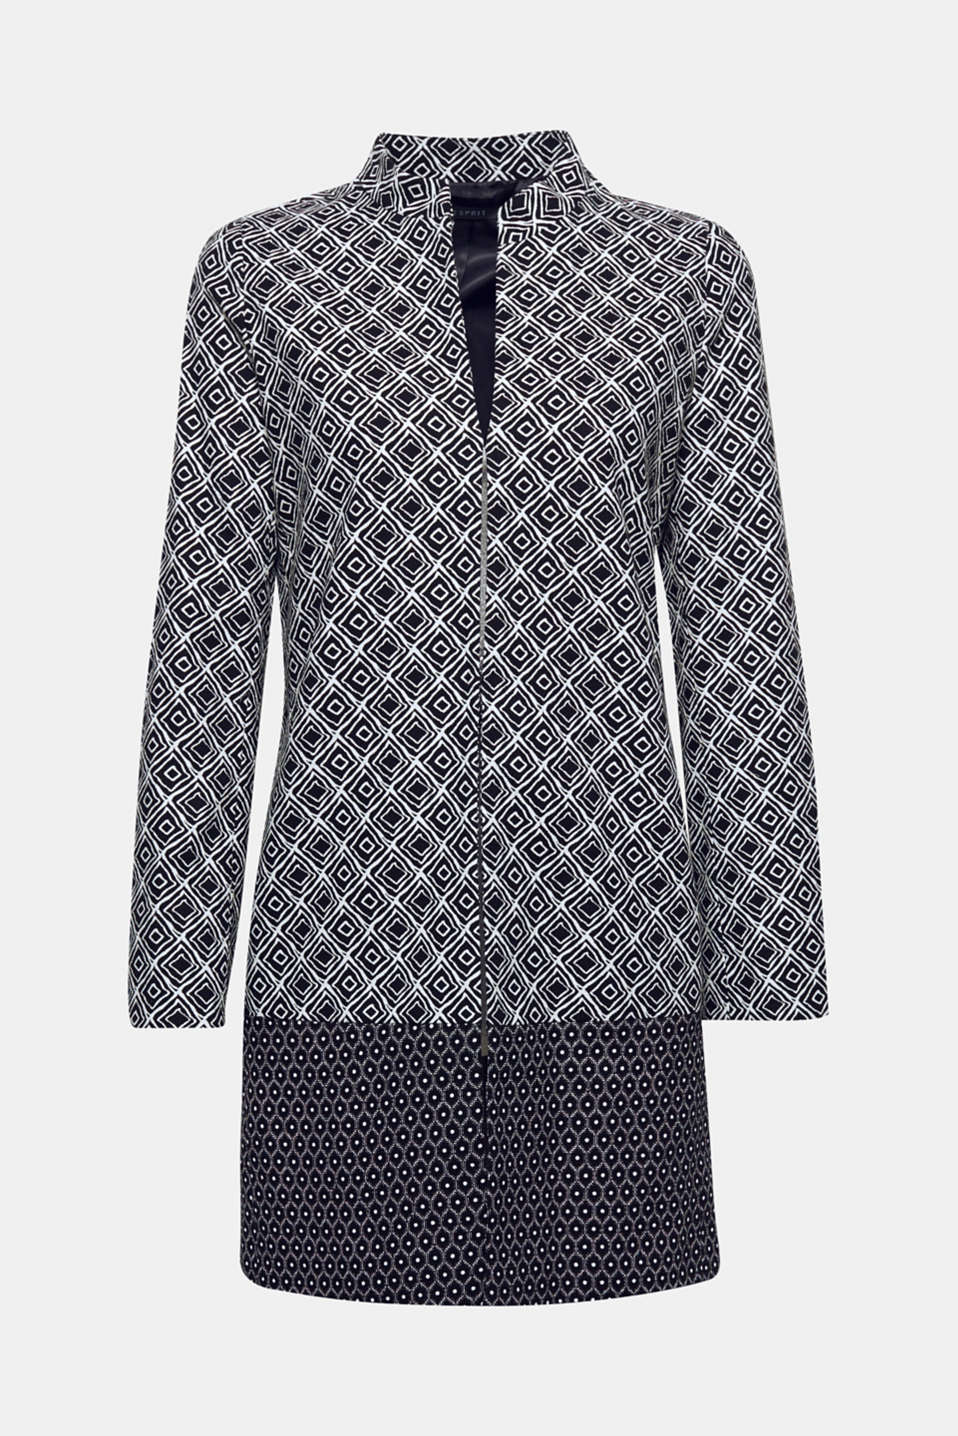 Decorative, geometric prints give this slightly textured coat its modern style! The added stretch ensures super comfort.